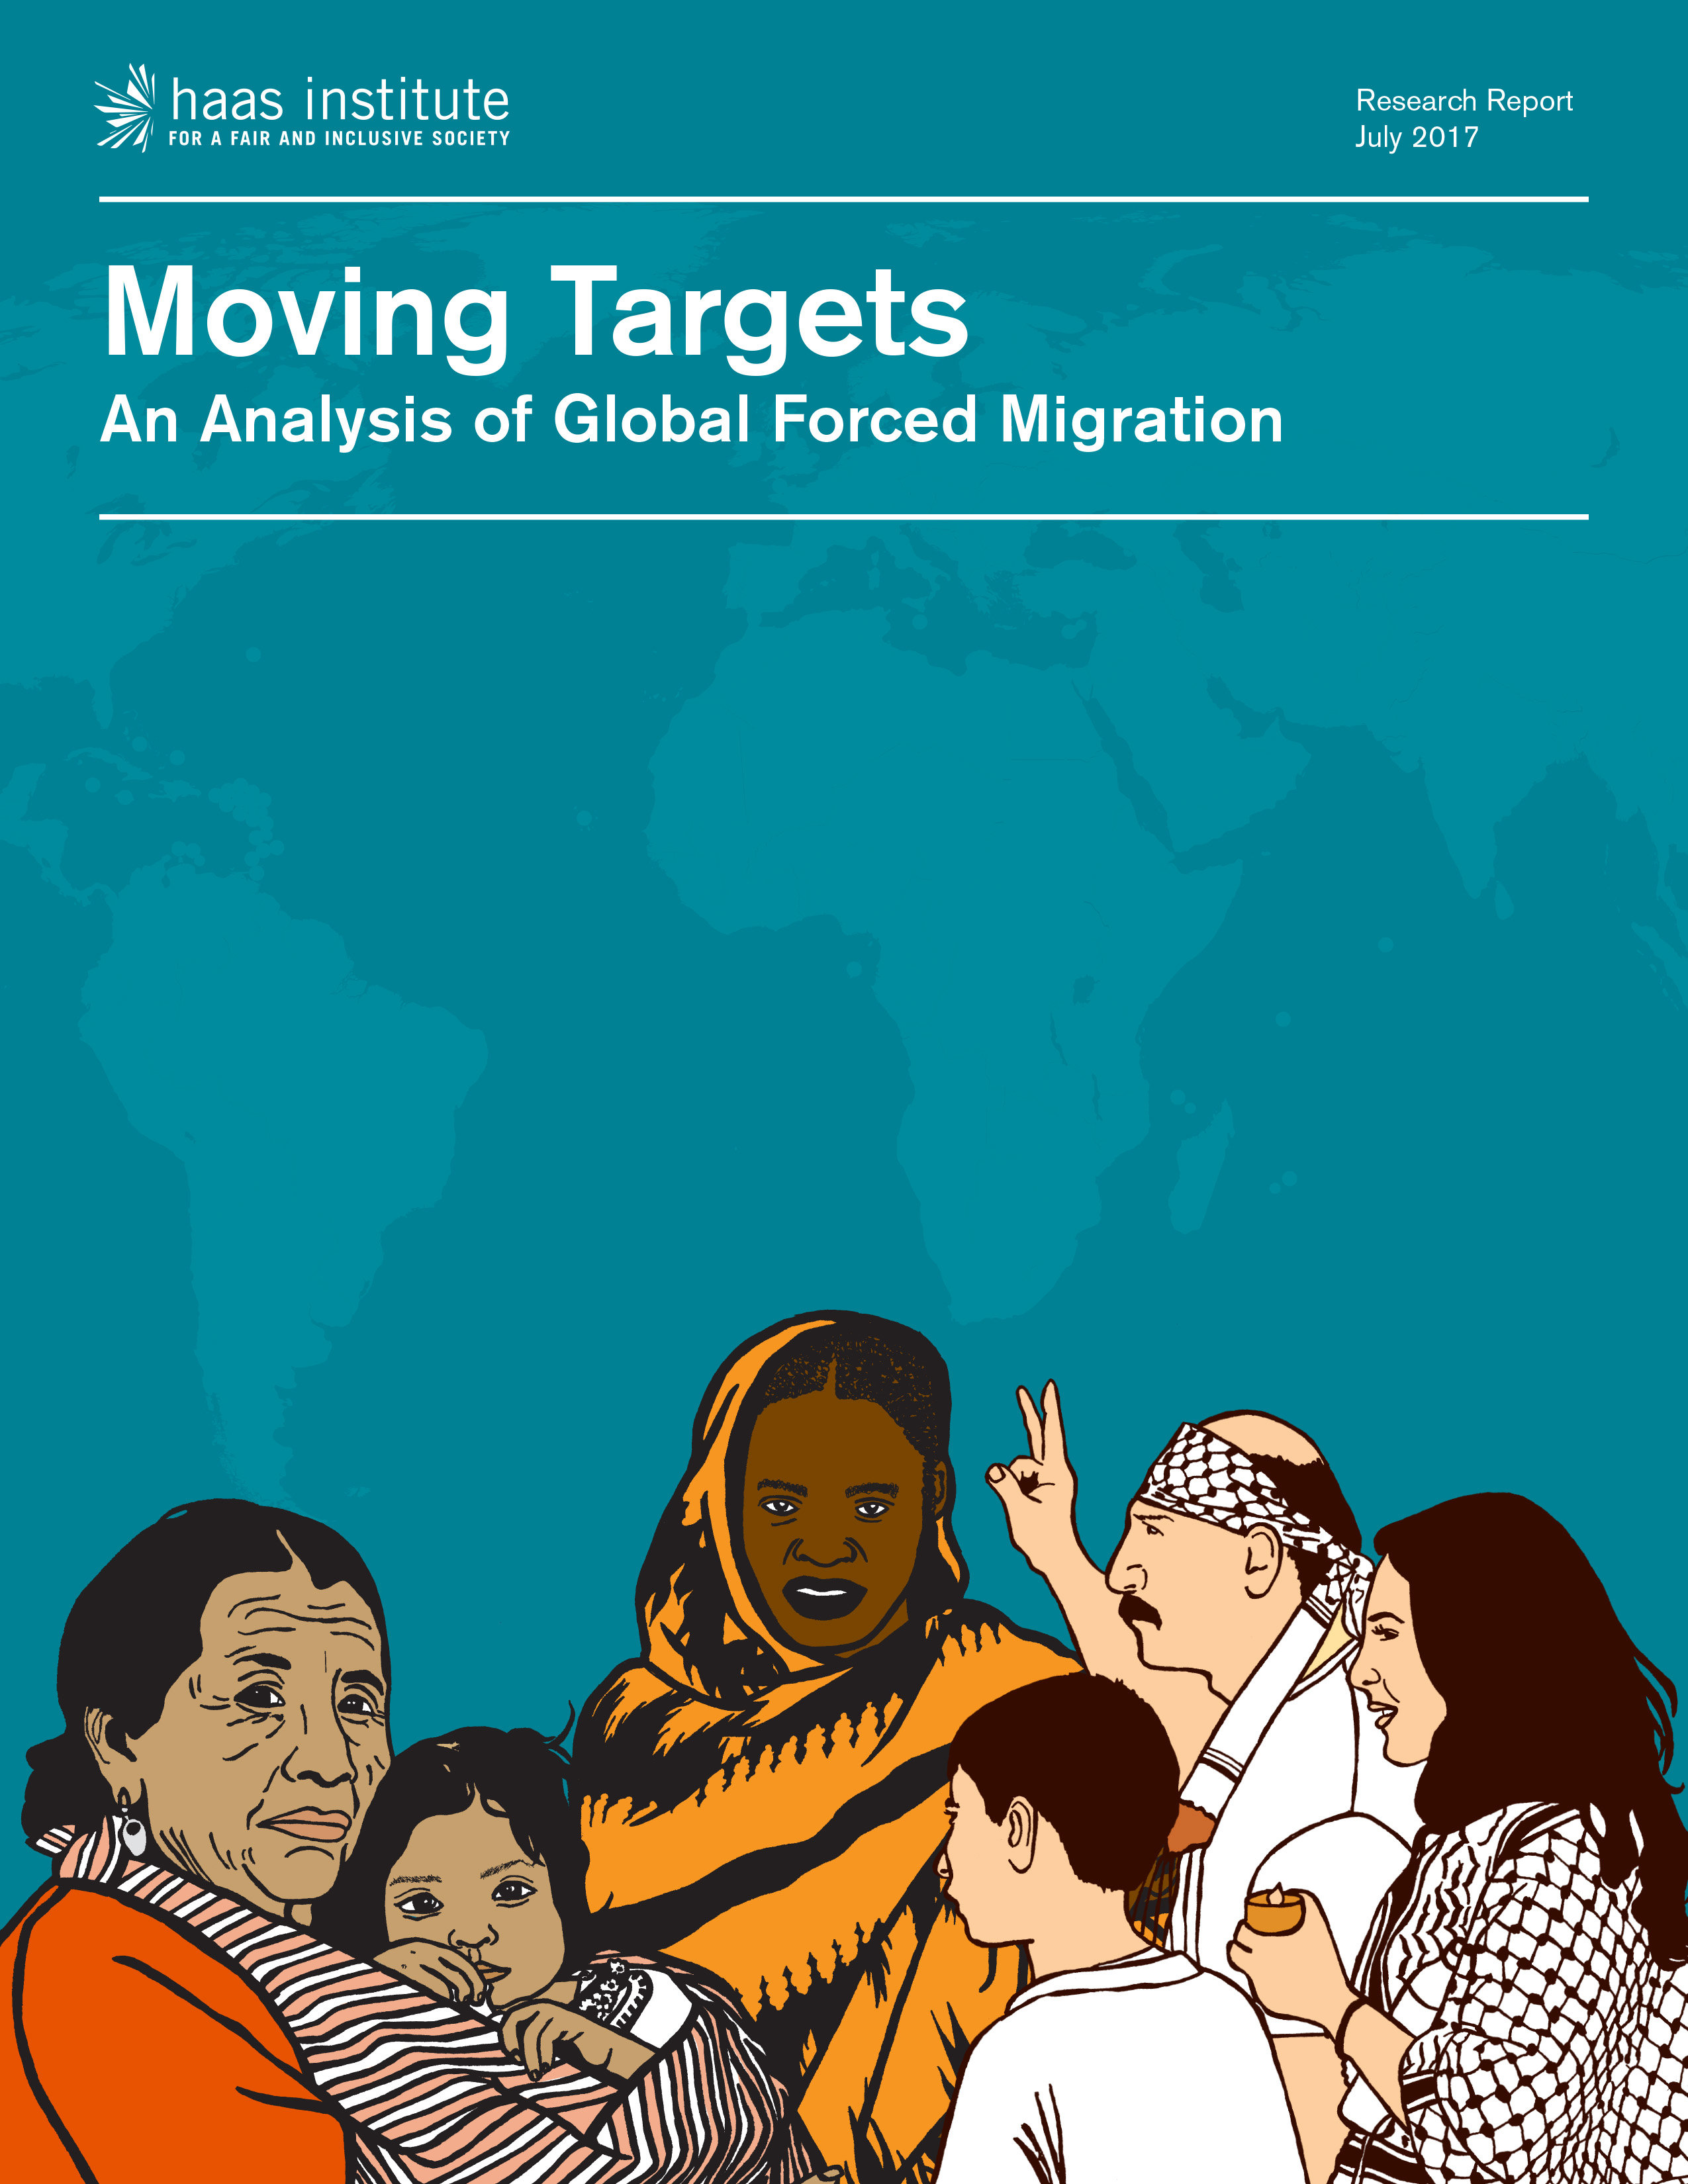 Cover image of Moving Targets report